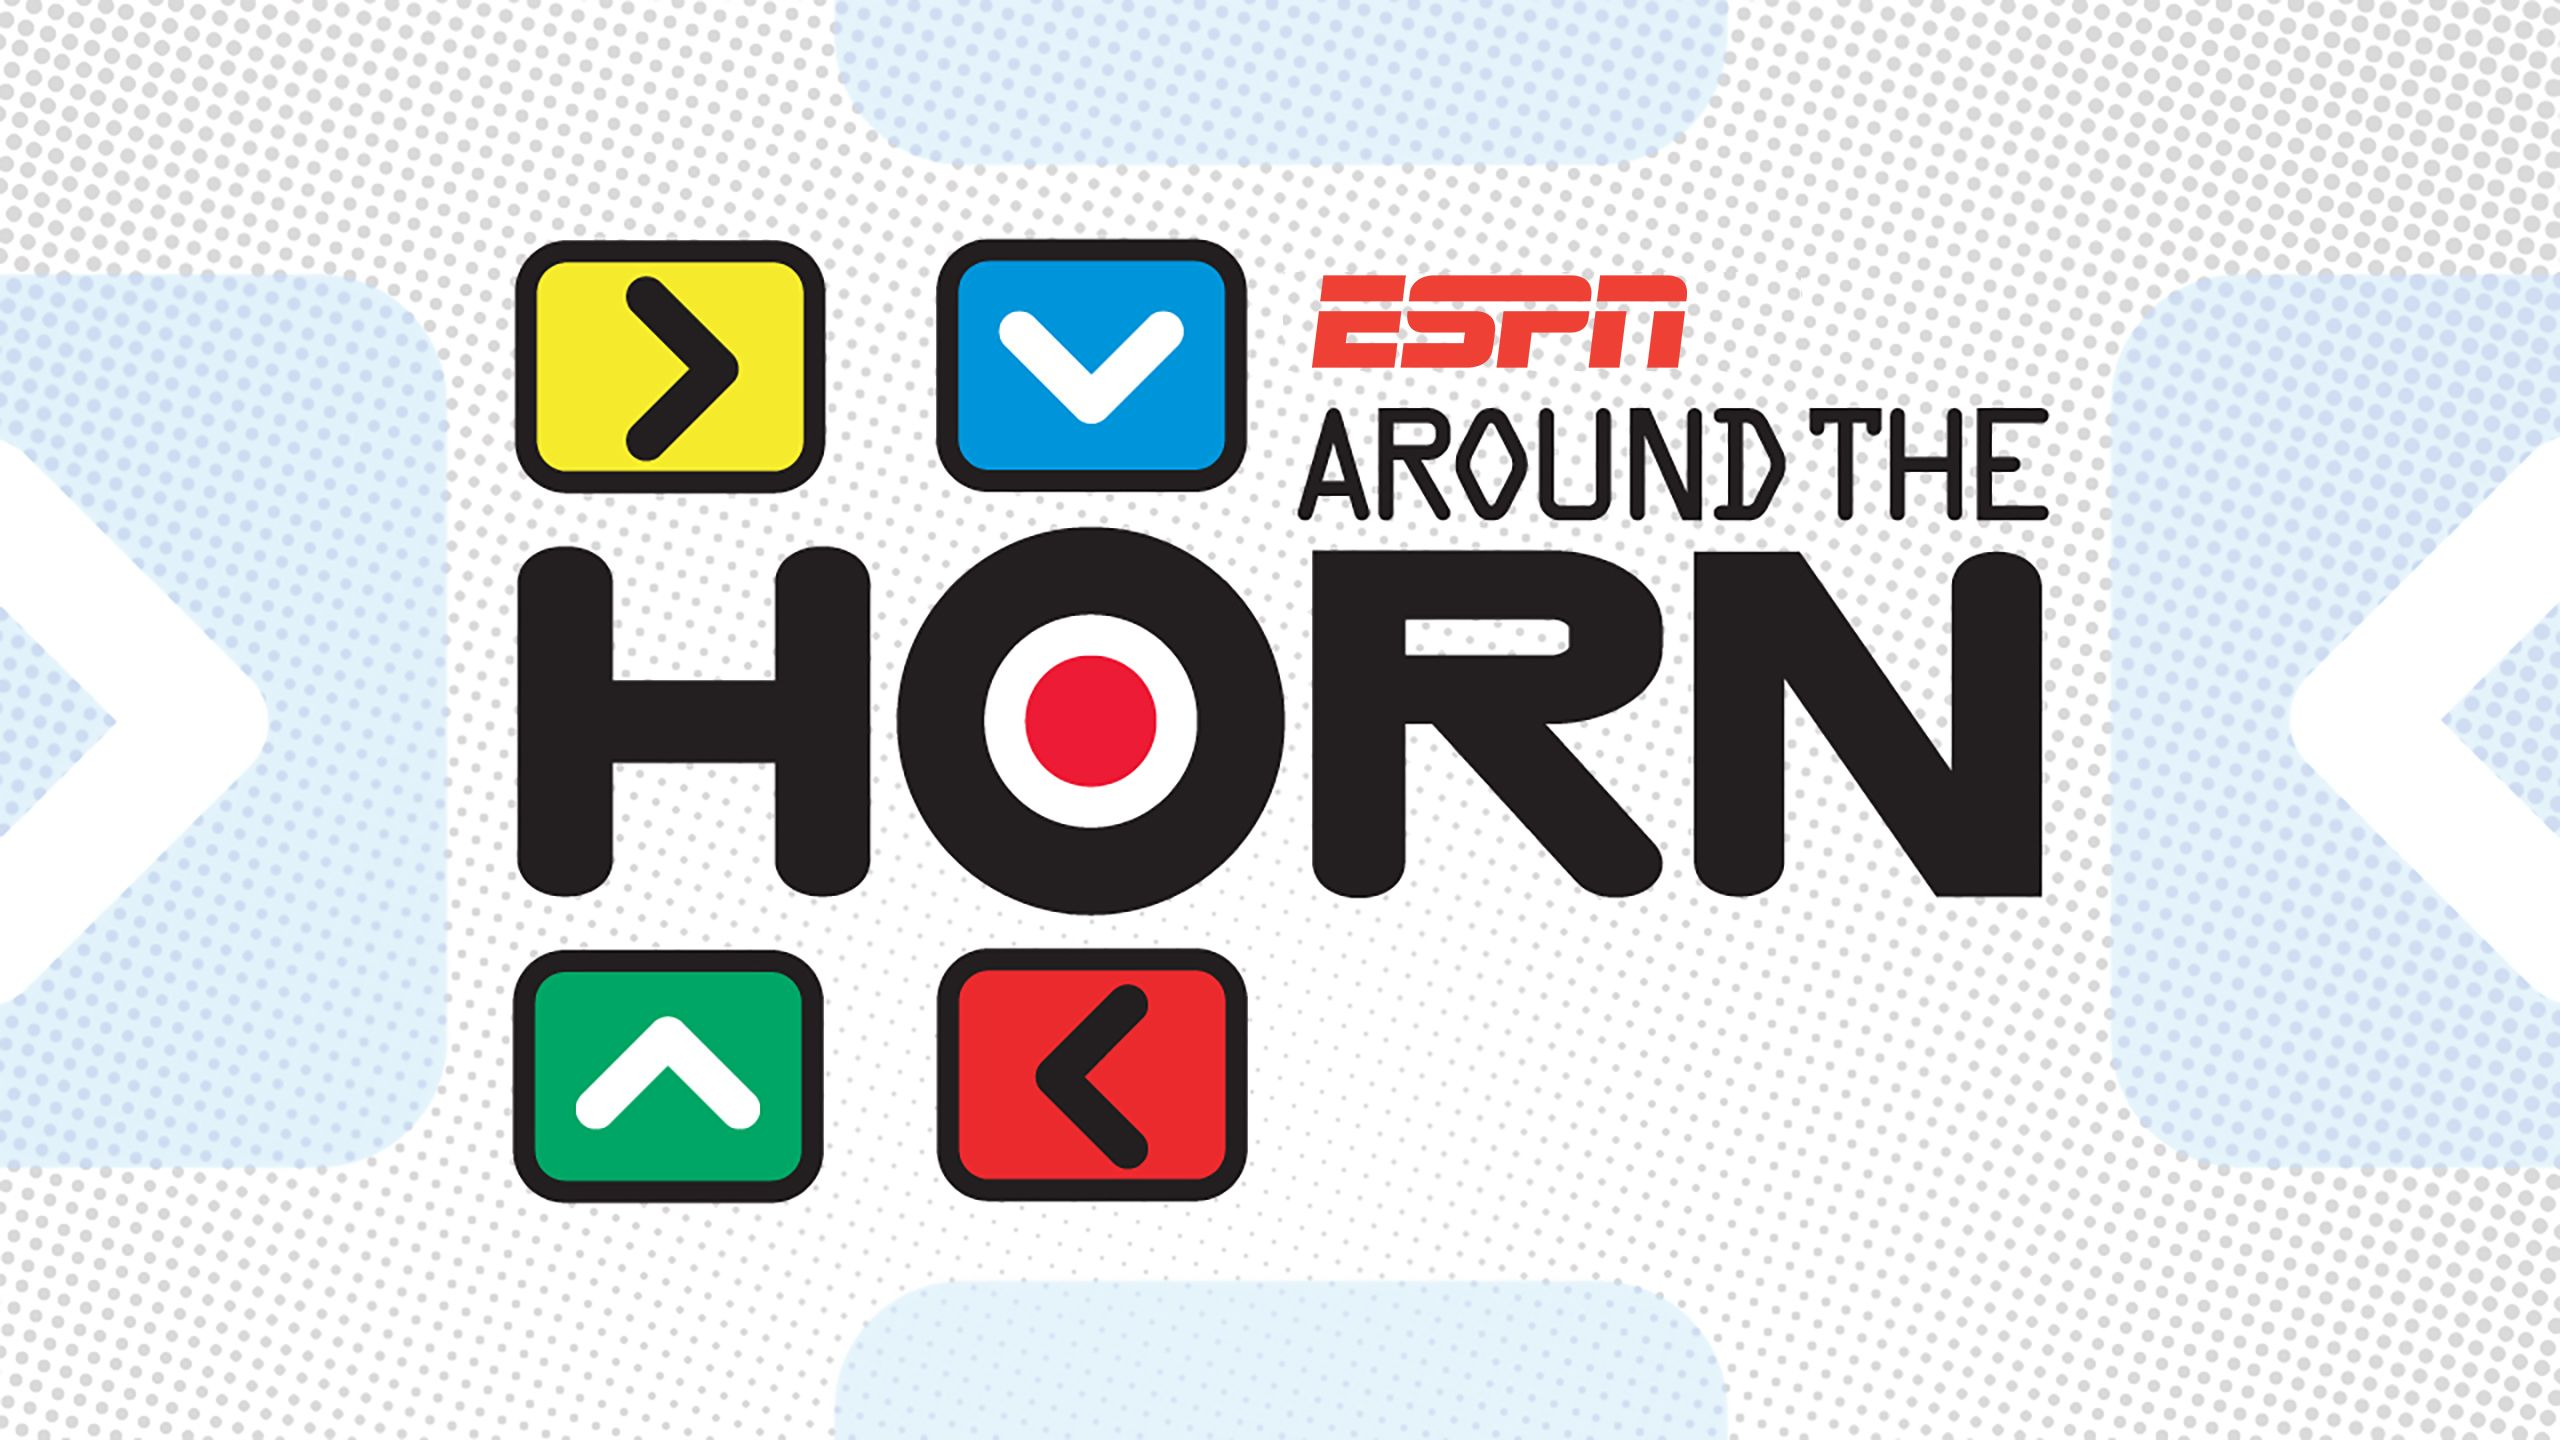 Mon, 12/11 - Around The Horn